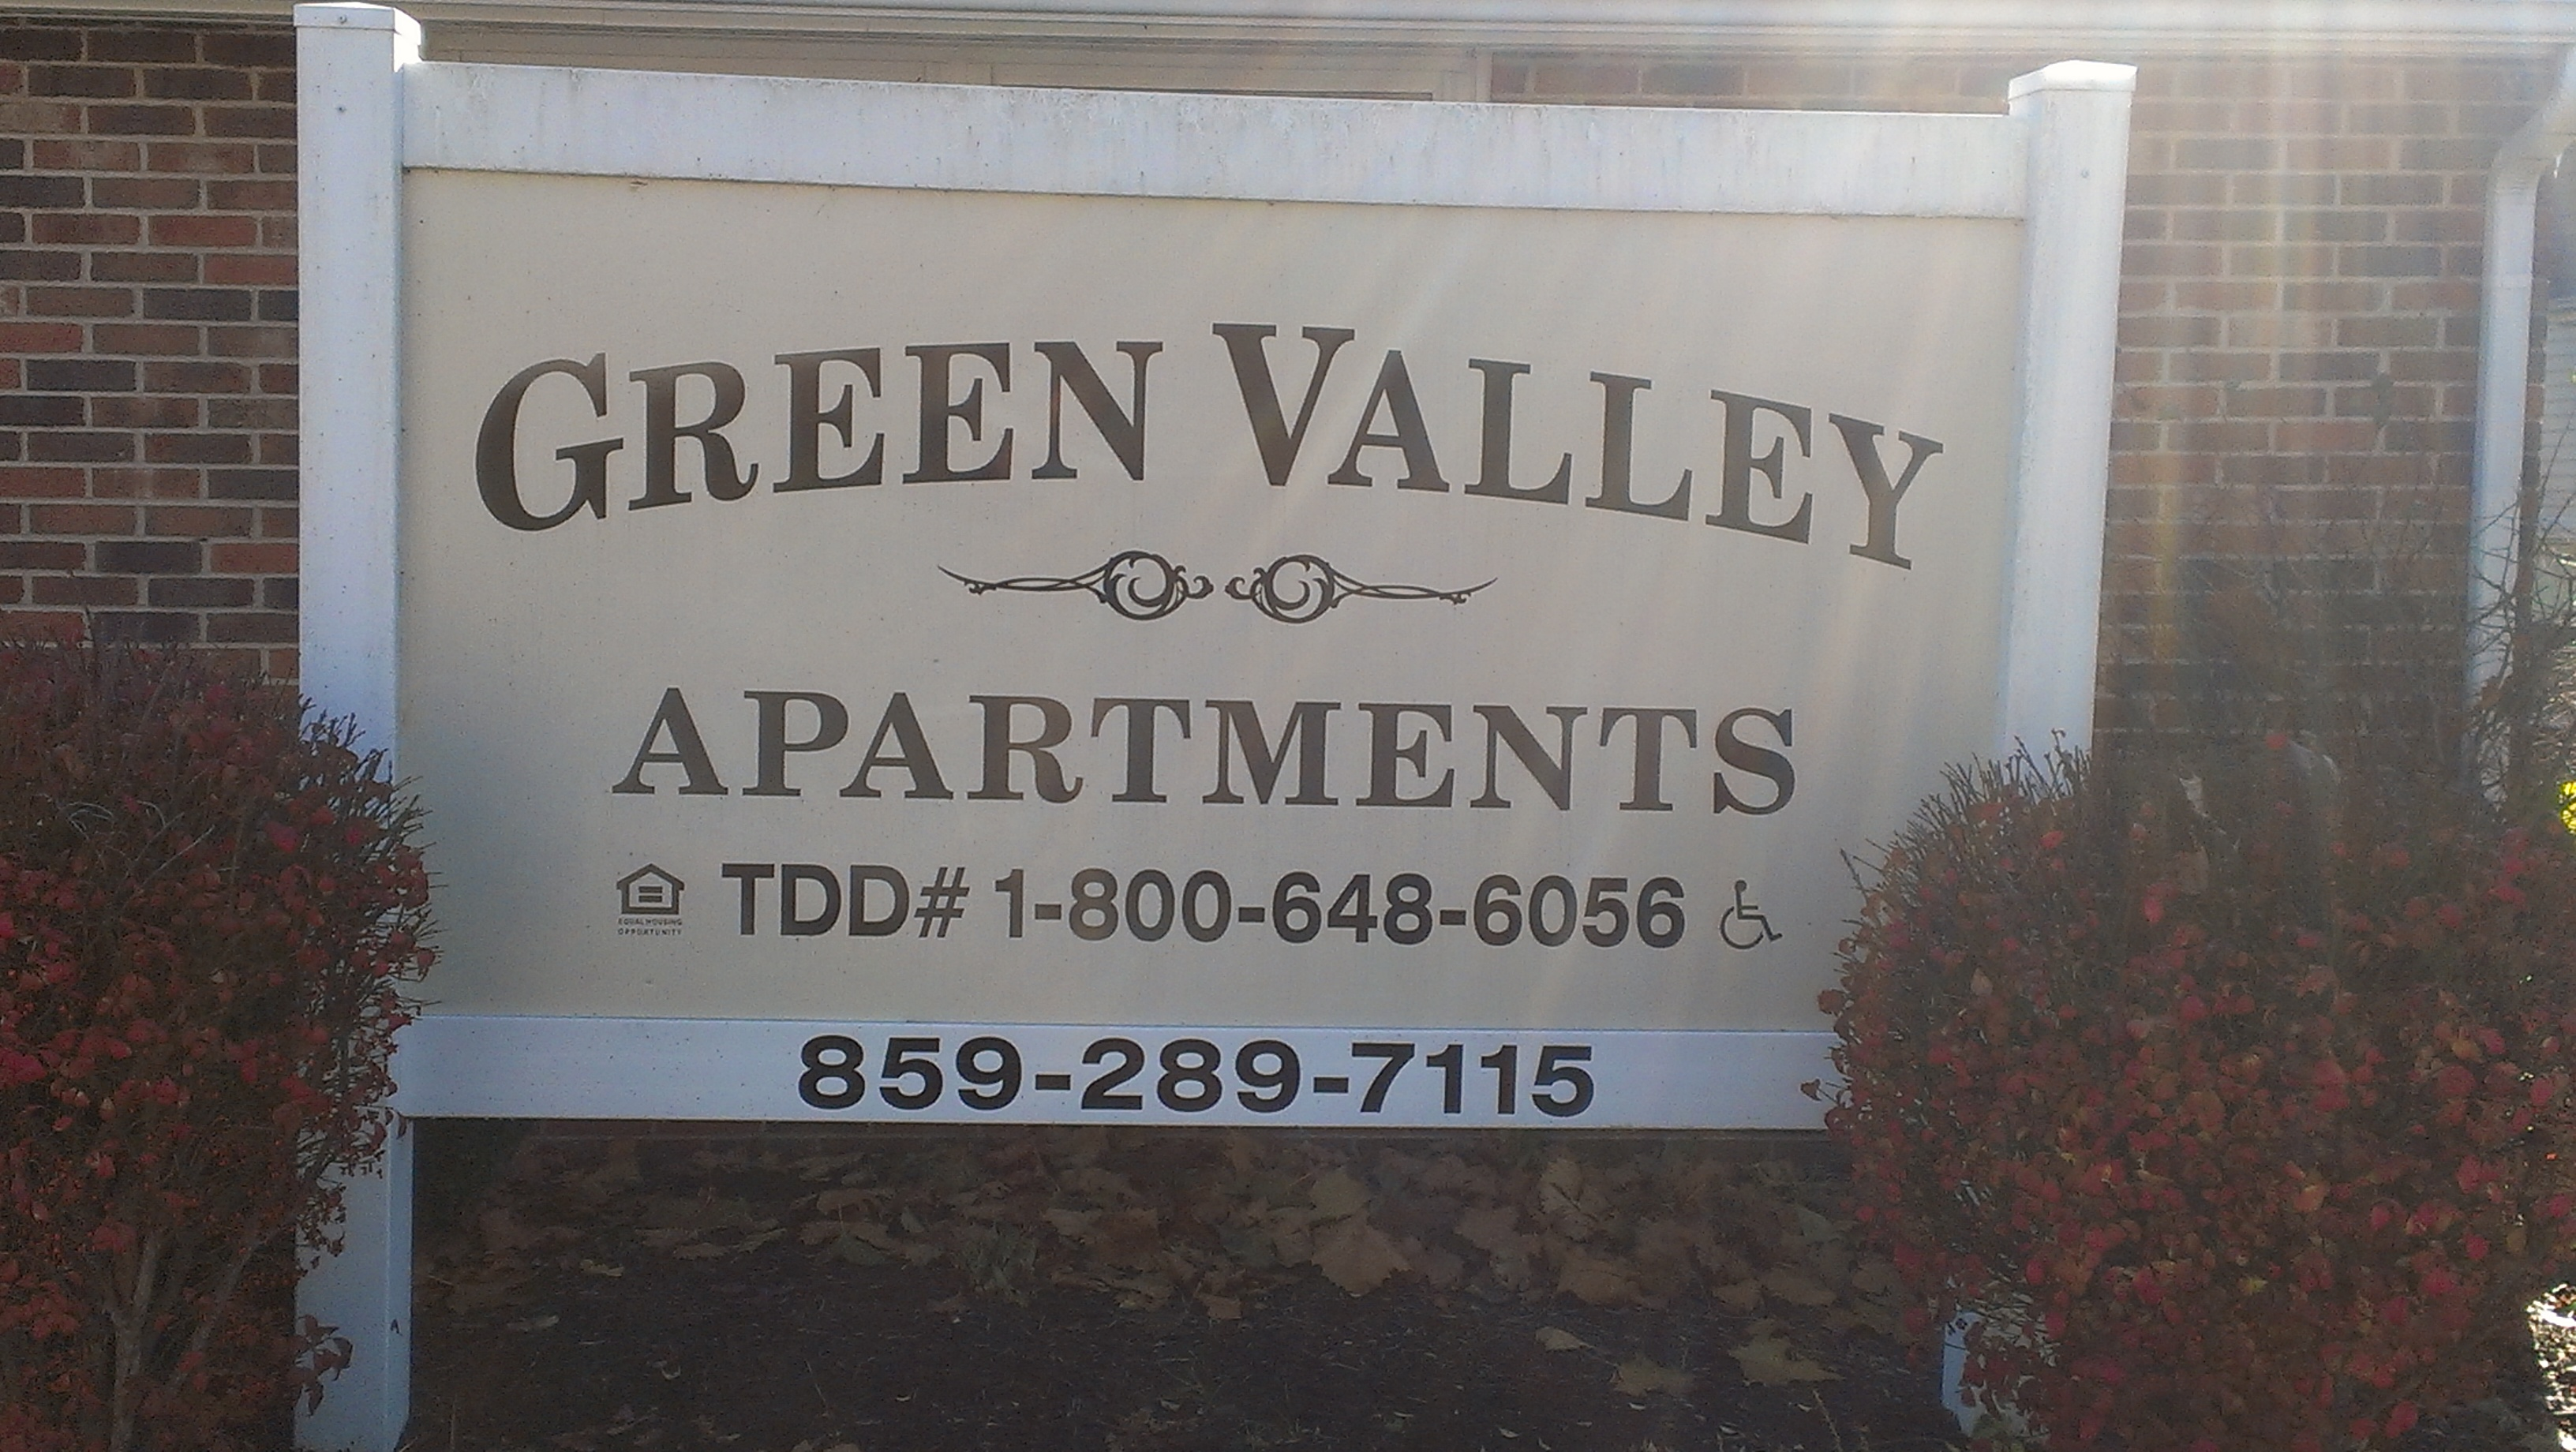 Image of Green Valley Apartments in Carlisle, Kentucky